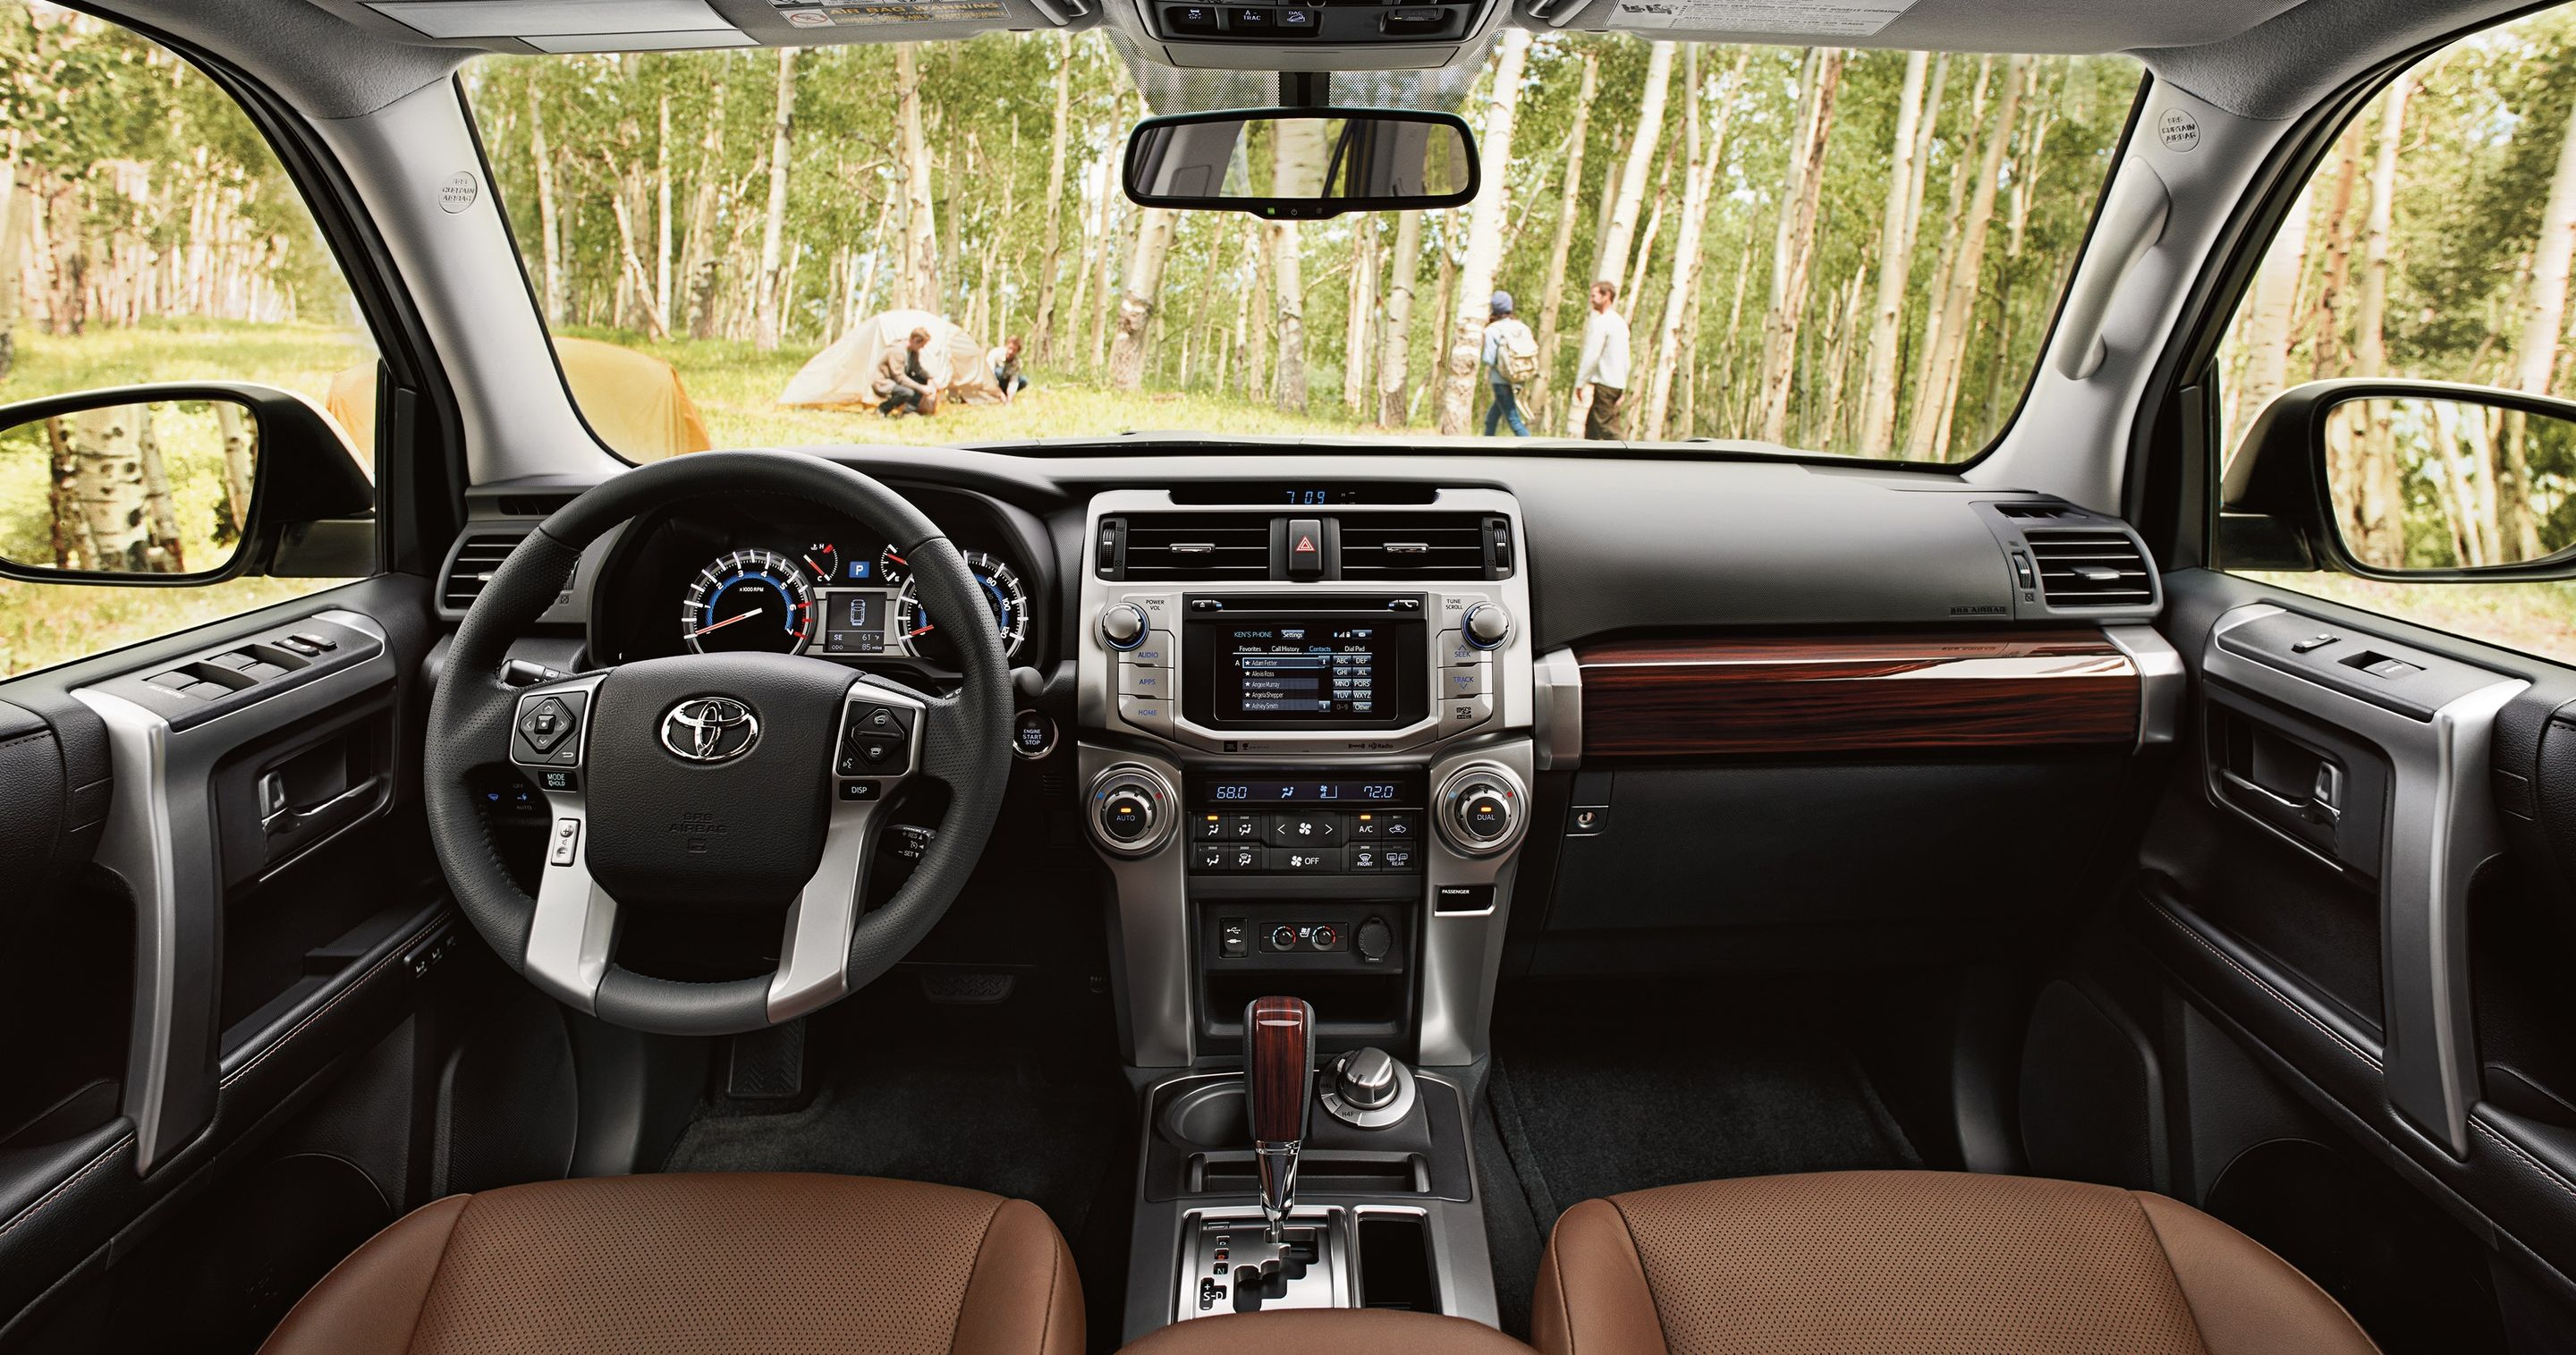 Cabin of the Toyota 4Runner